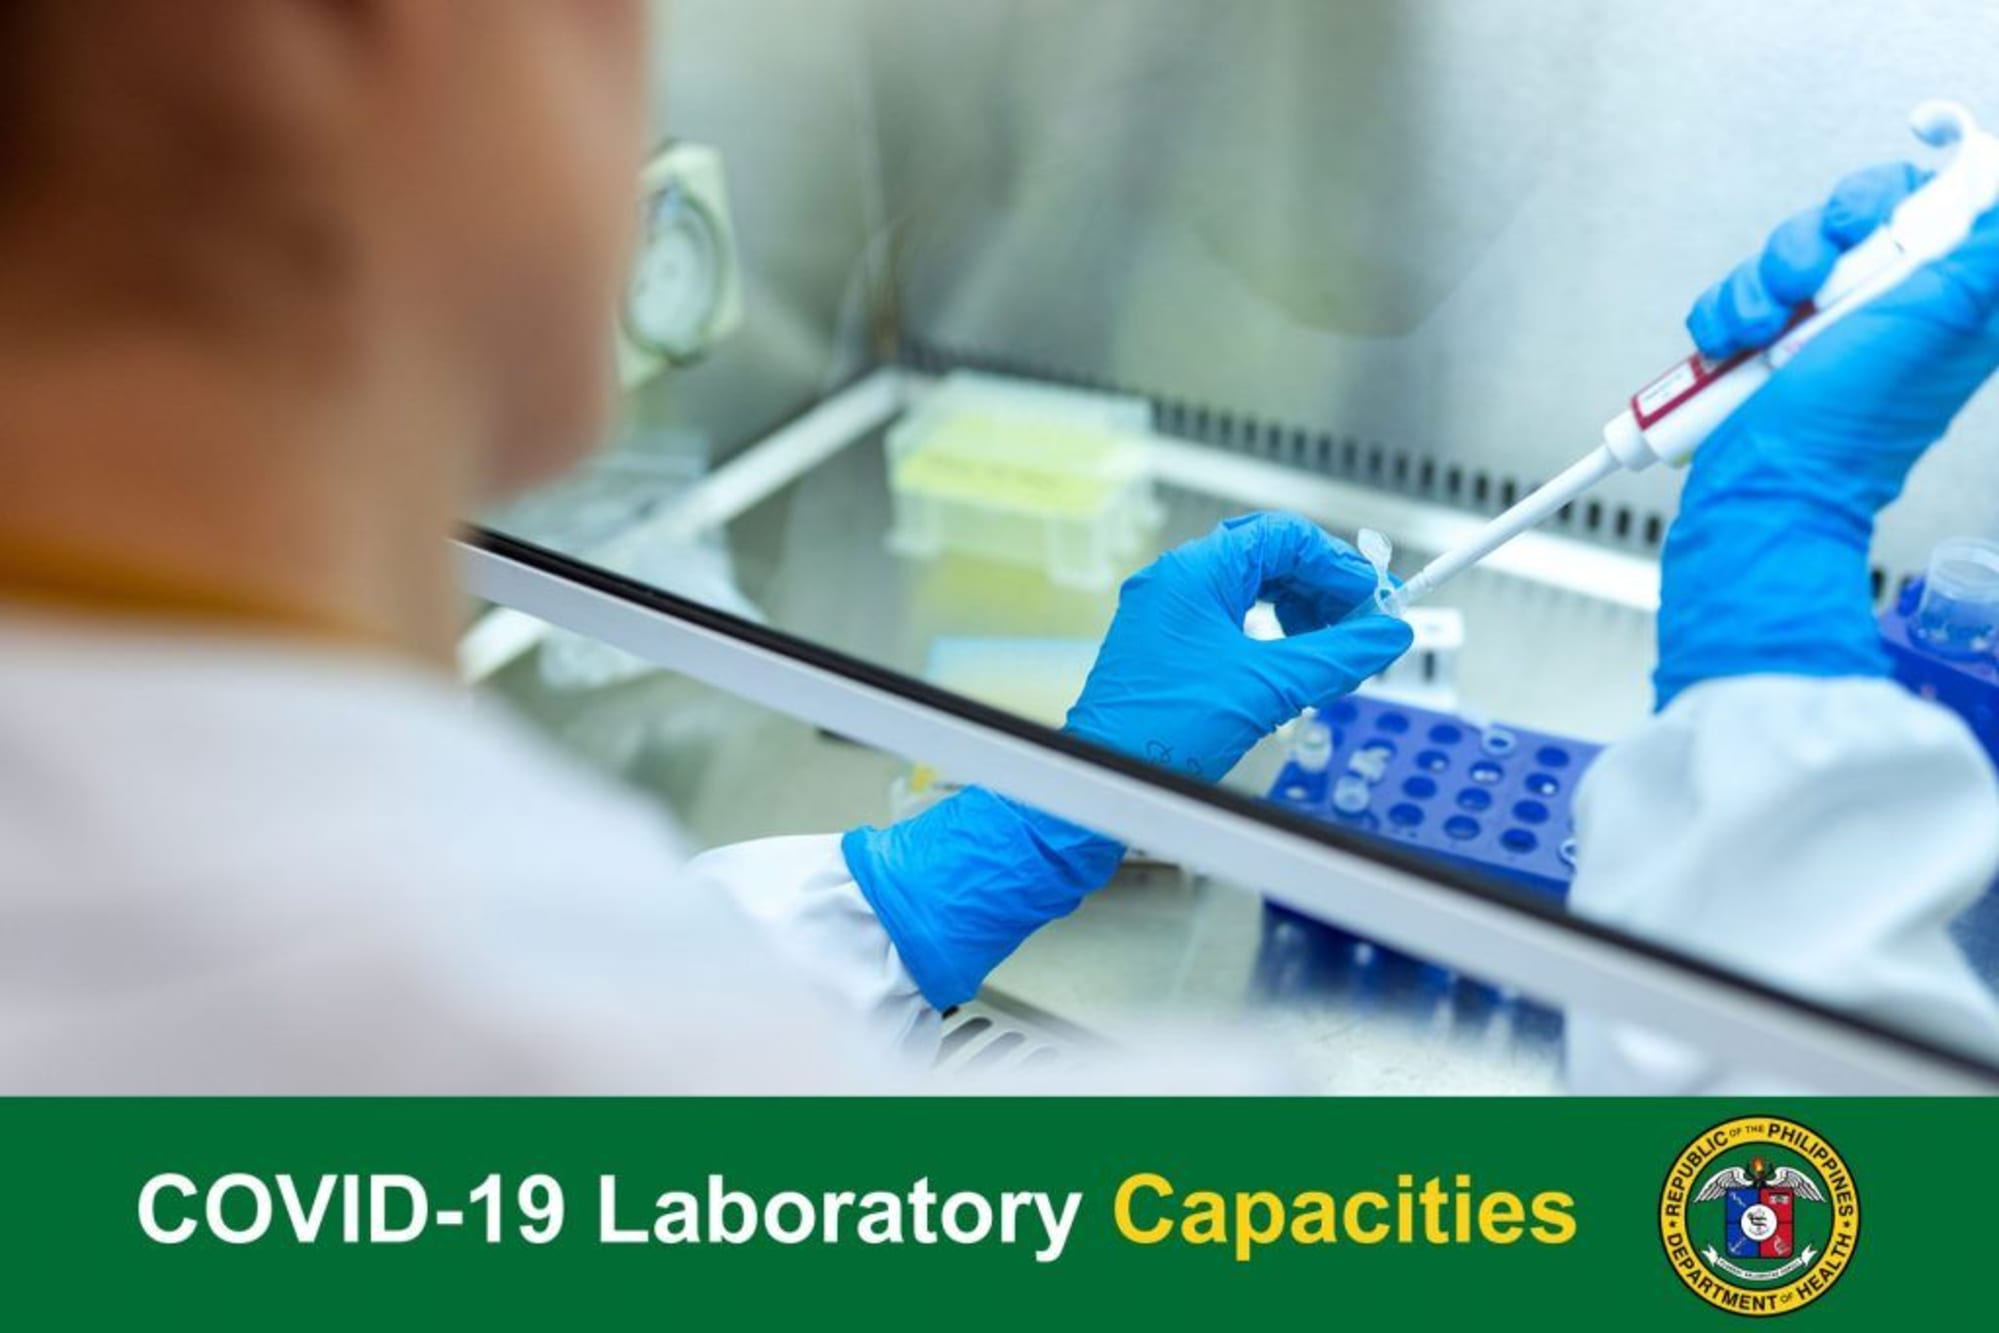 Know the Accreditation Status and COVID-19 Laboratory Capacities of Health Facilities in the Philippines as of April 2, 2020